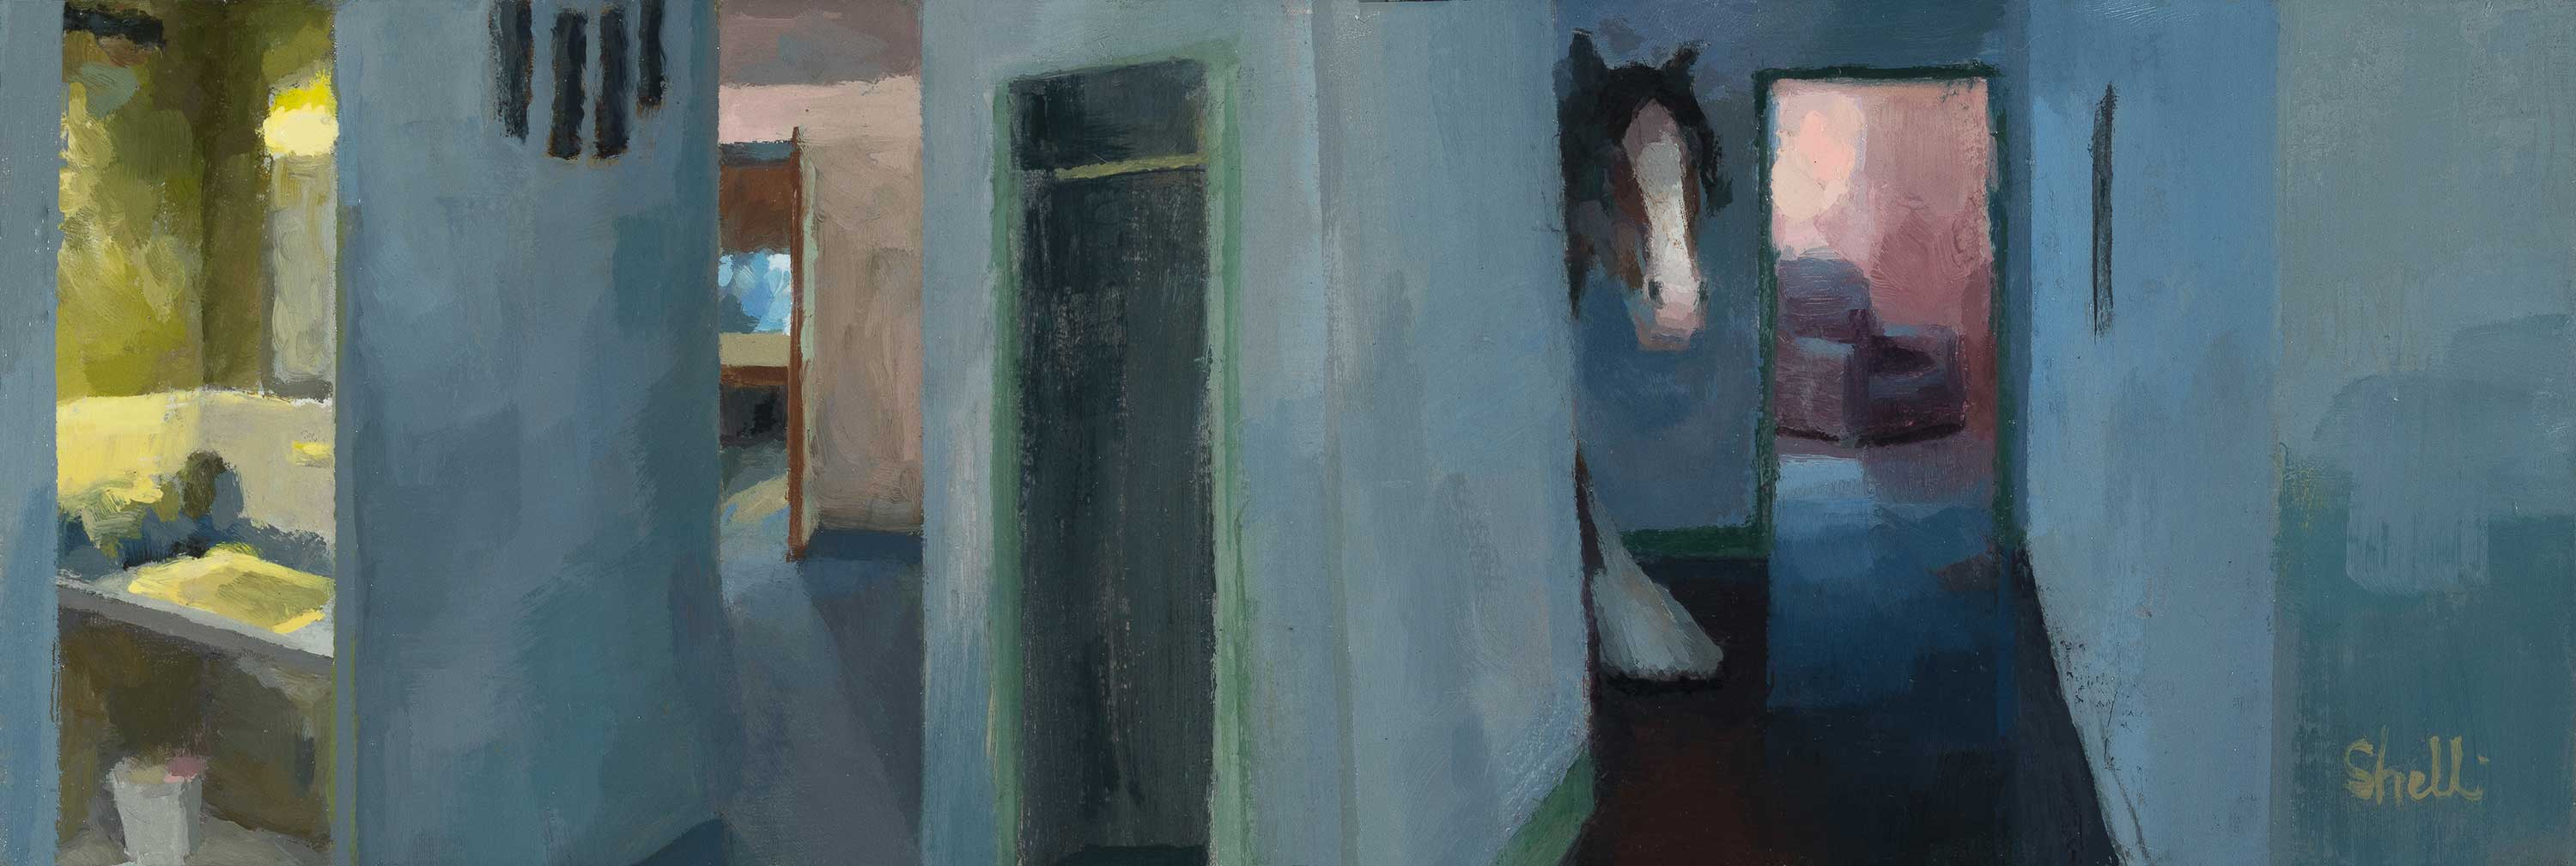 painting of a horse in a hallway